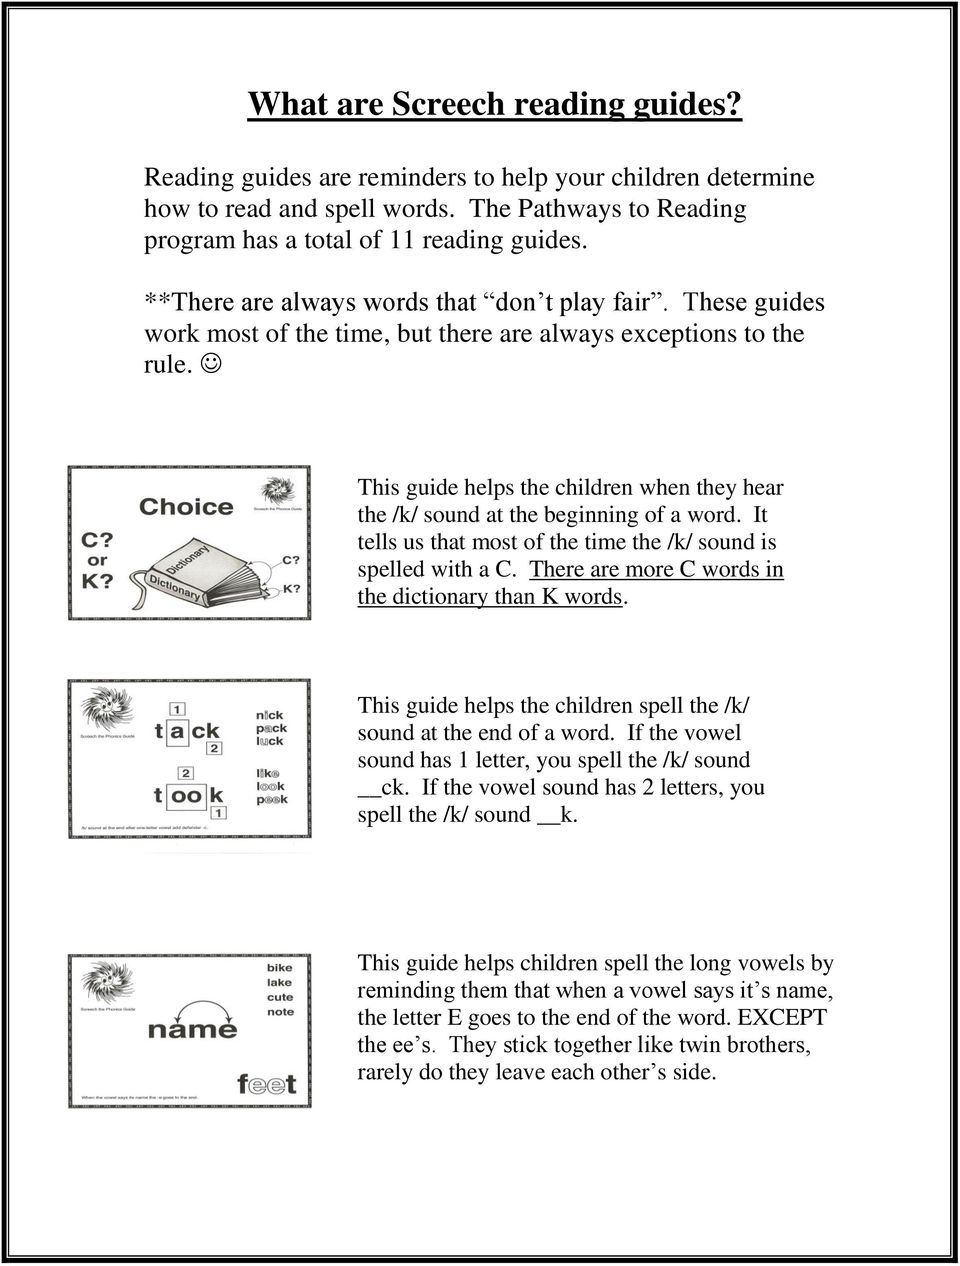 This guide helps the children when they hear the /k/ sound at the beginning of a word. It tells us that most of the time the /k/ sound is spelled with a C.